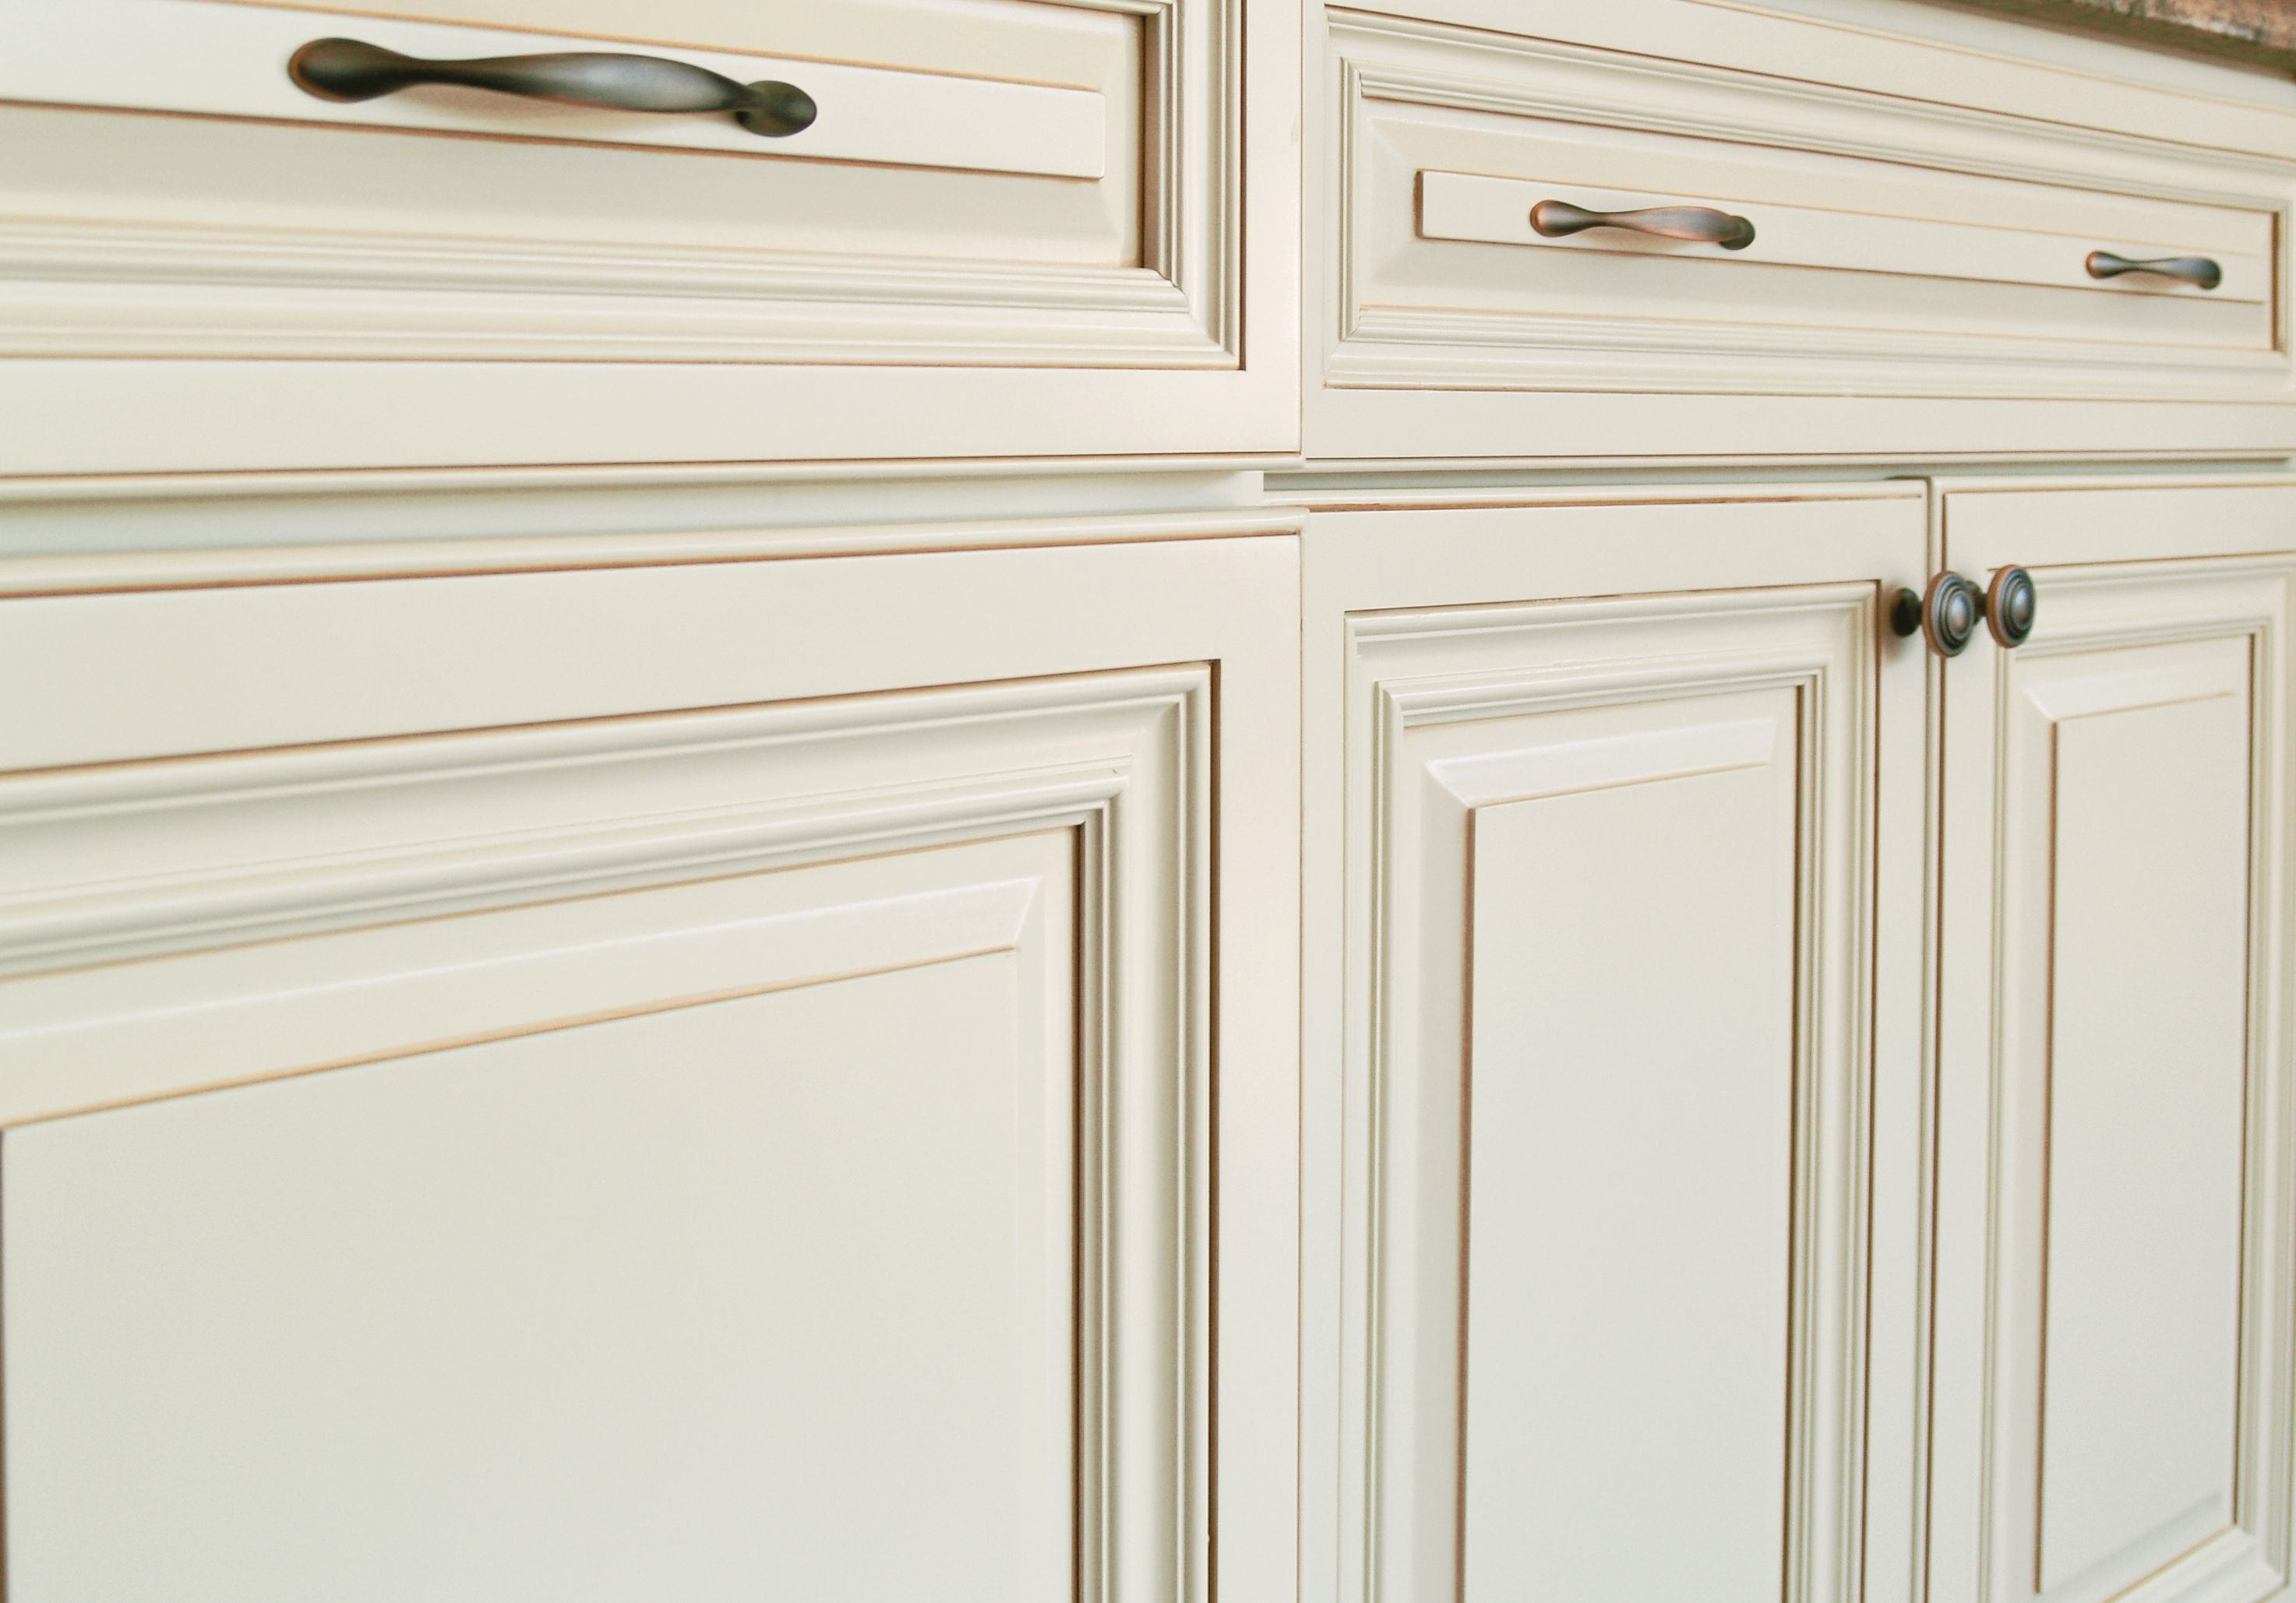 Renaissance Maple Raised Panel Painted Creamy Off White With Caramel Glaze Pair With Cambrid Kitchen Cabinet Design Renaissance Kitchen Redo Kitchen Cabinets